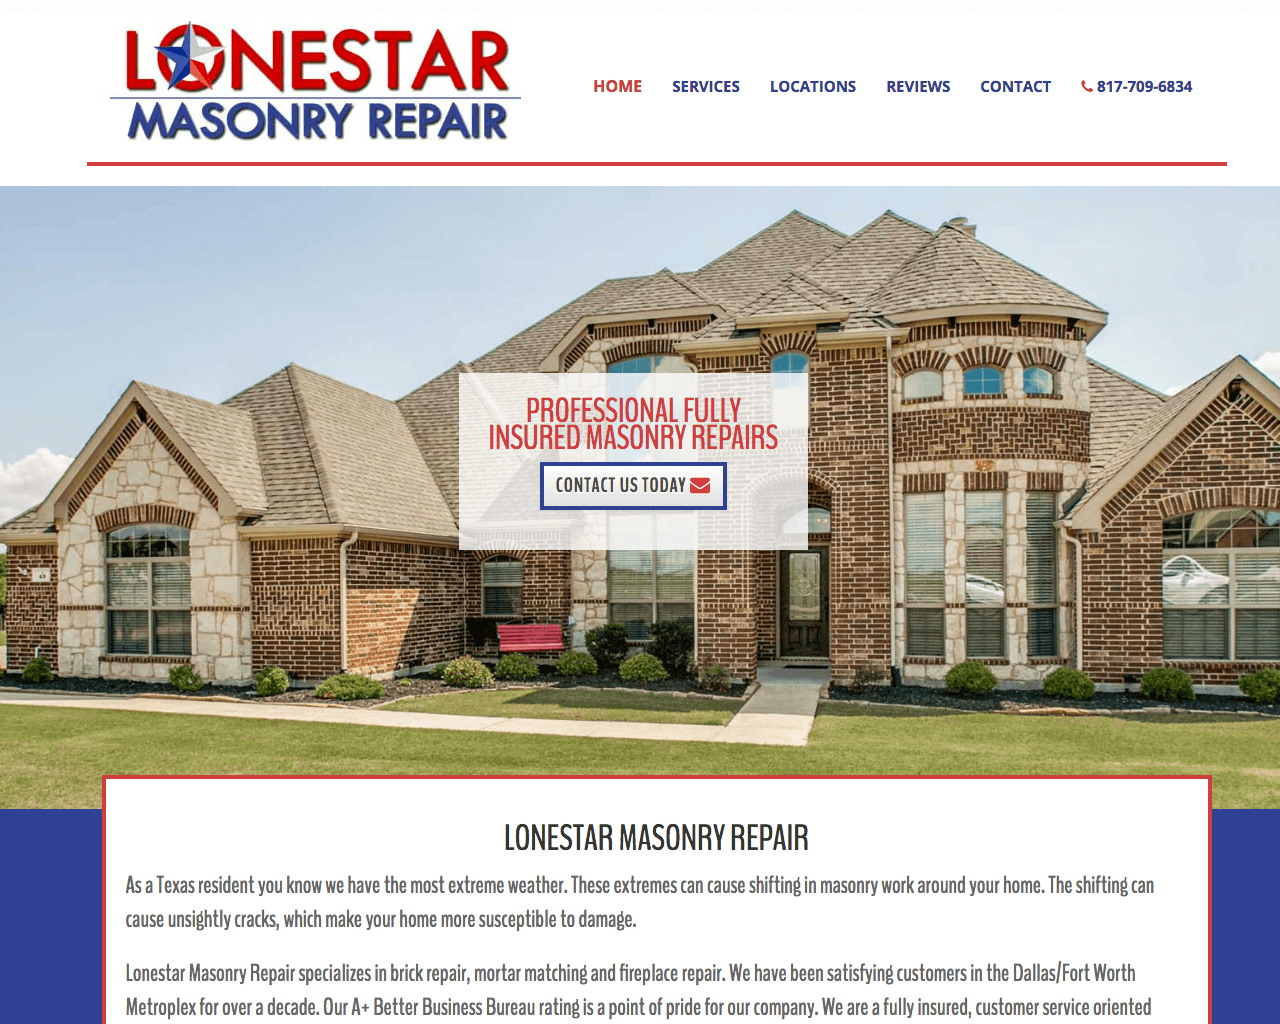 Lonestar Masonry Reppair